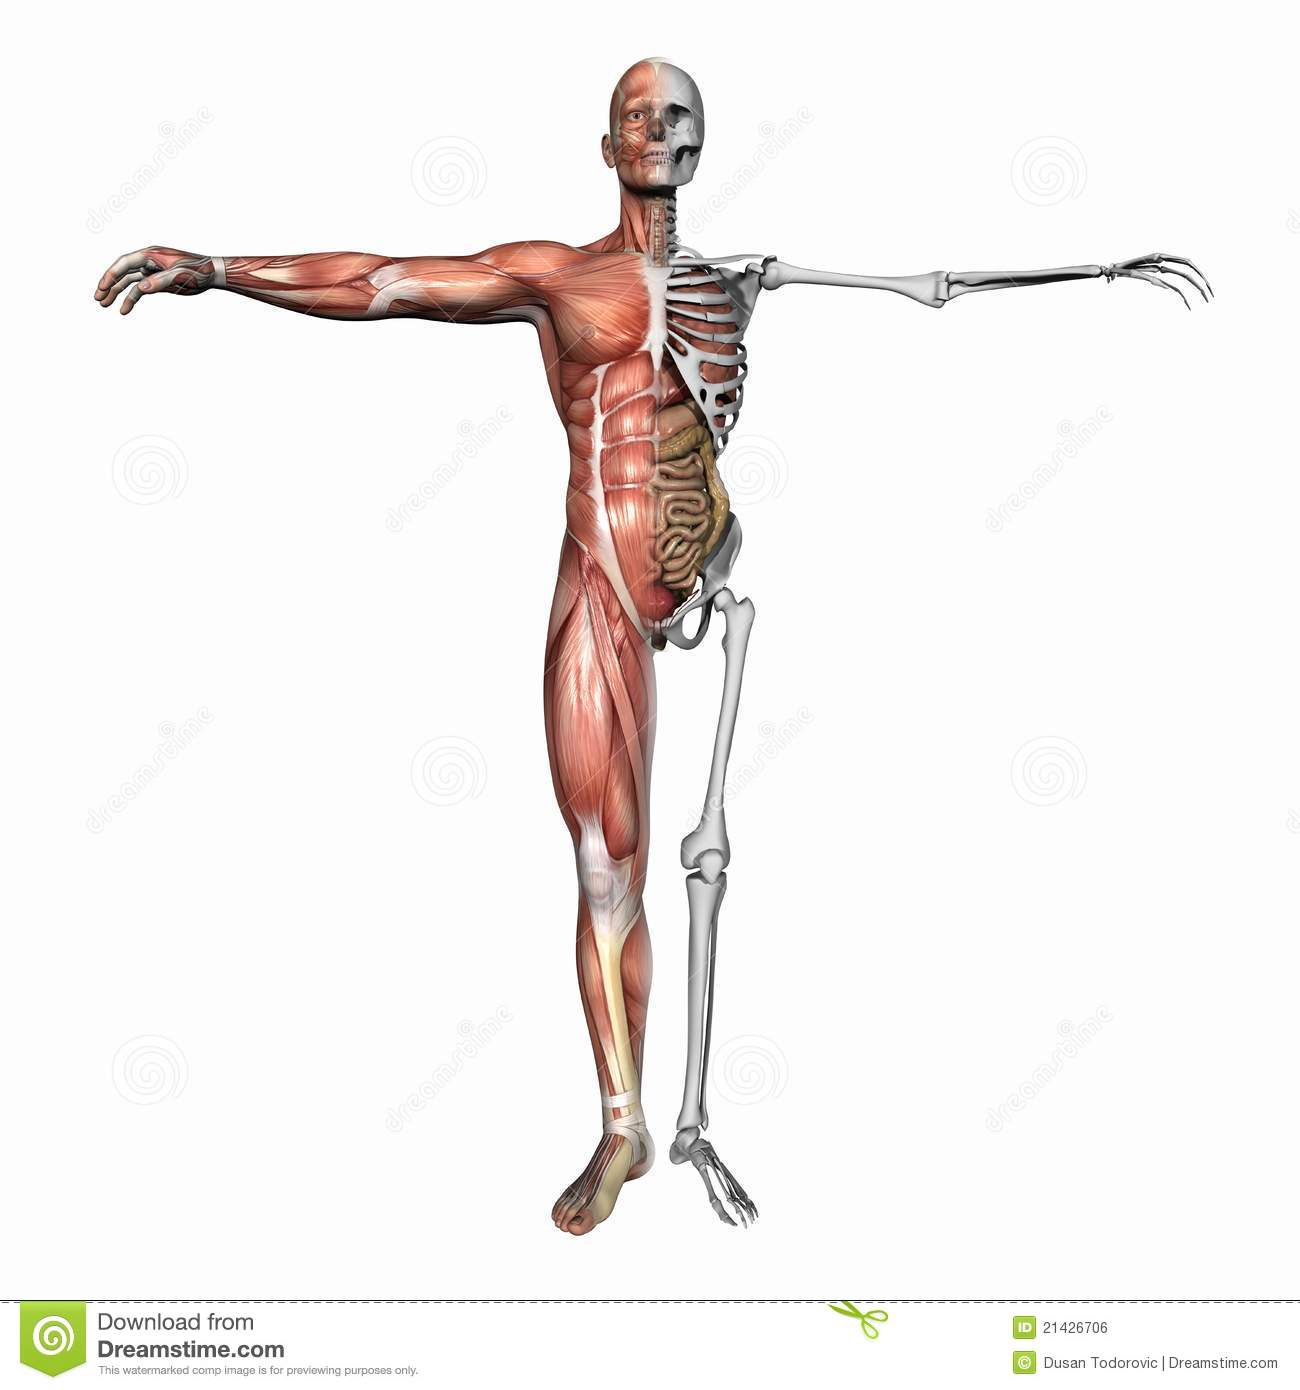 Anatomy, Muscles And Skeleton Stock Illustration - Illustration of ...